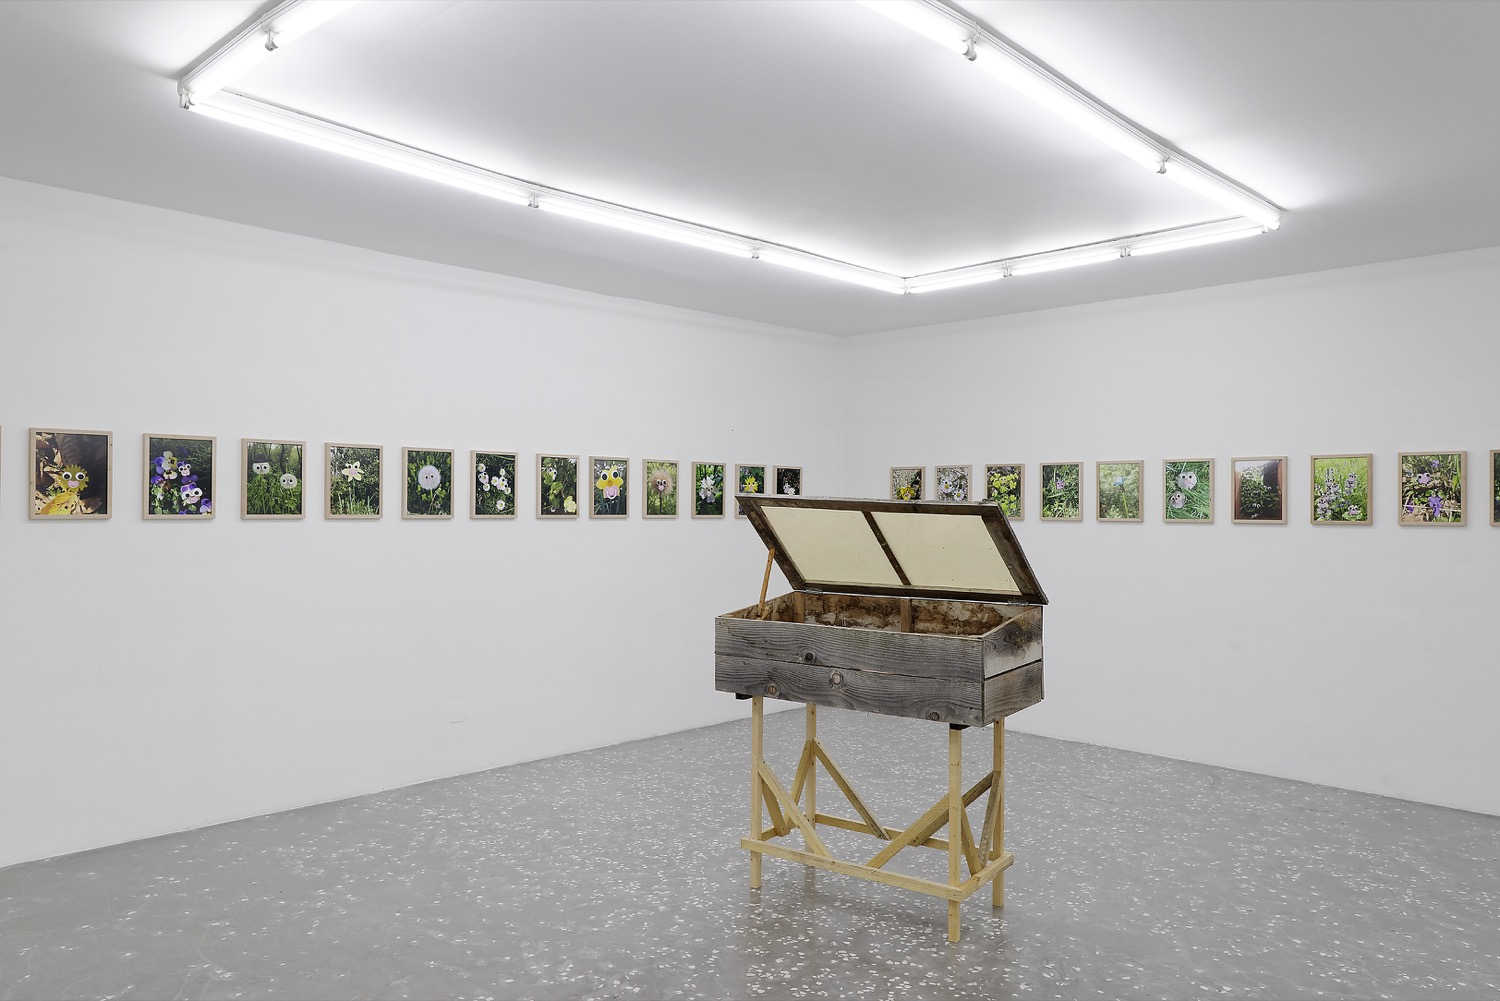 Cédric Fargues, Bébéfleurs (2016). Installation view. Courtesy New Galerie, Paris.